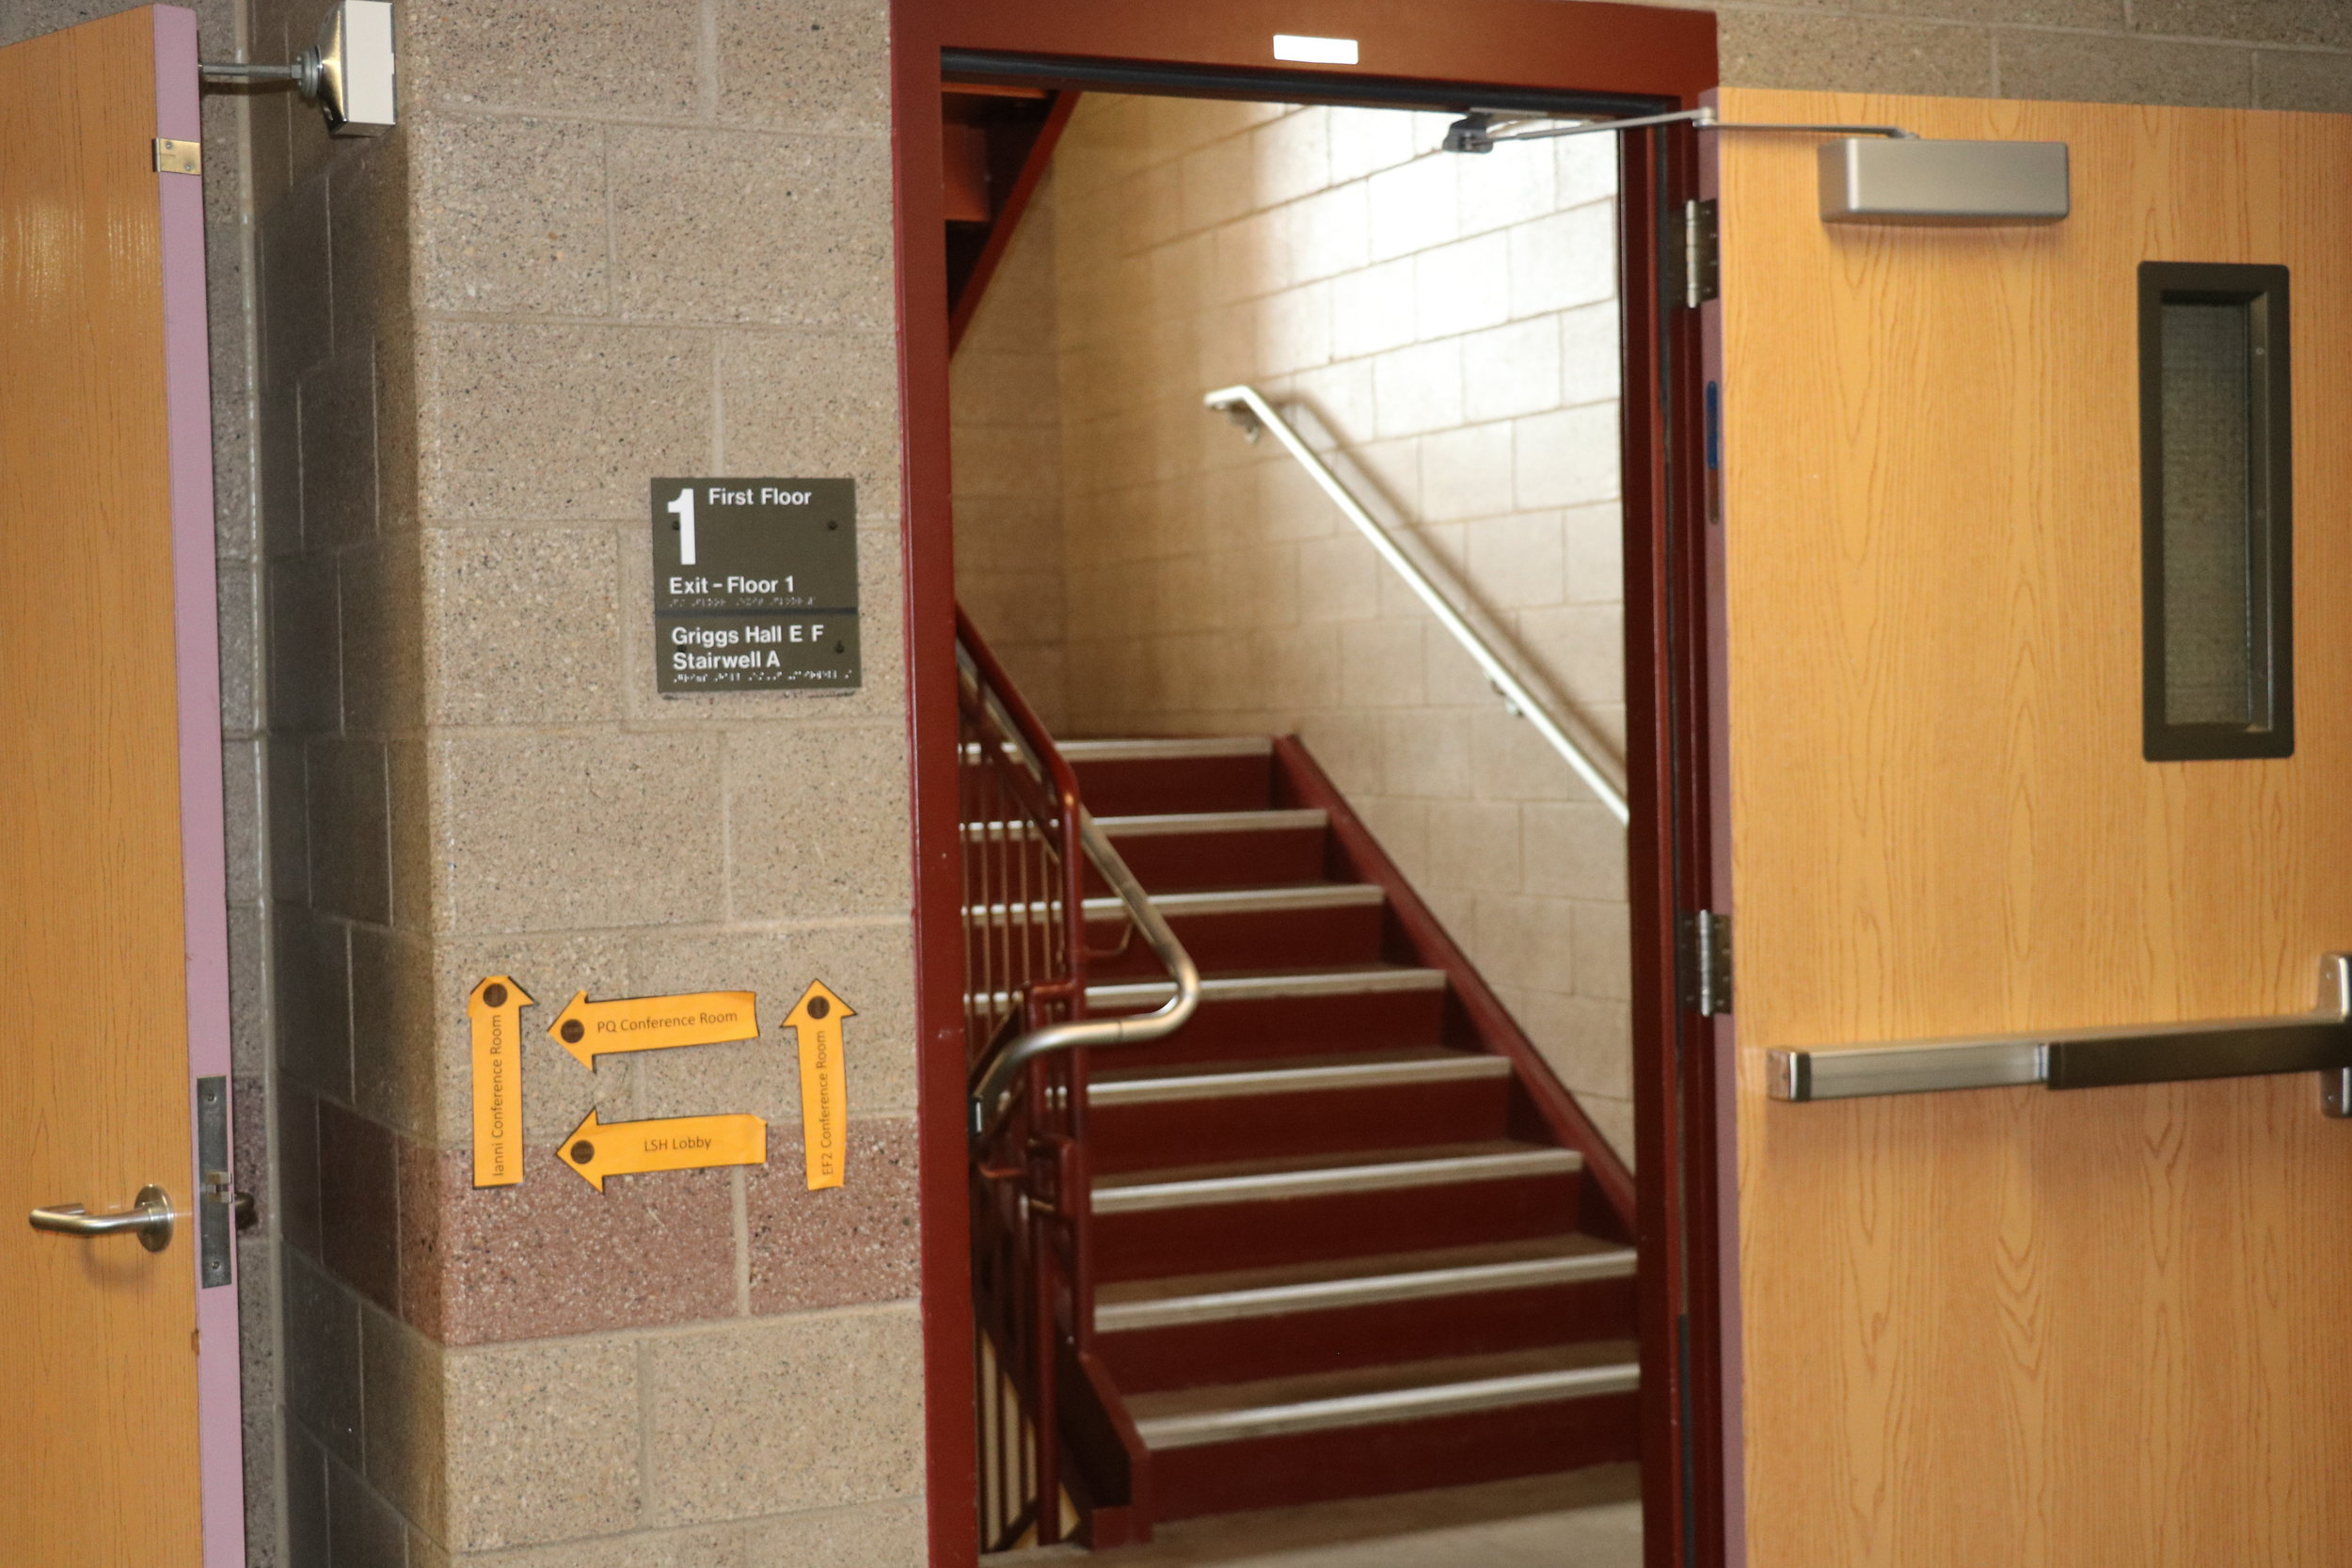 Griggs EF staircase where the image was found. Photo by Trinh Tran